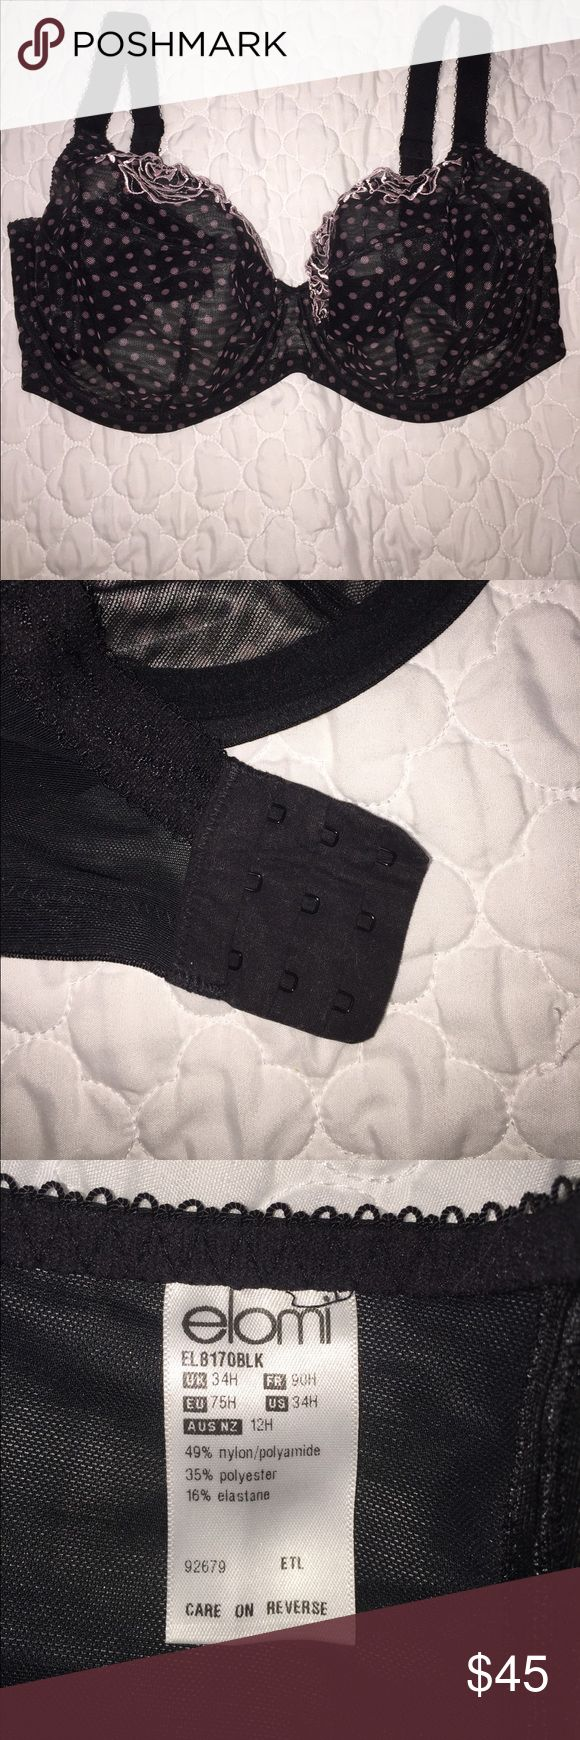 Women's Elomi Bra Size US 34H/UK Style EL817BLK Women's Elomi Bra Size US 34H/UK Style EL817BLK. Worn twice, freshly washed. Purchased at Nordstrom. Comes from smoke and pet free home. No trades, thanks for stopping by! Elomi Intimates & Sleepwear Bras